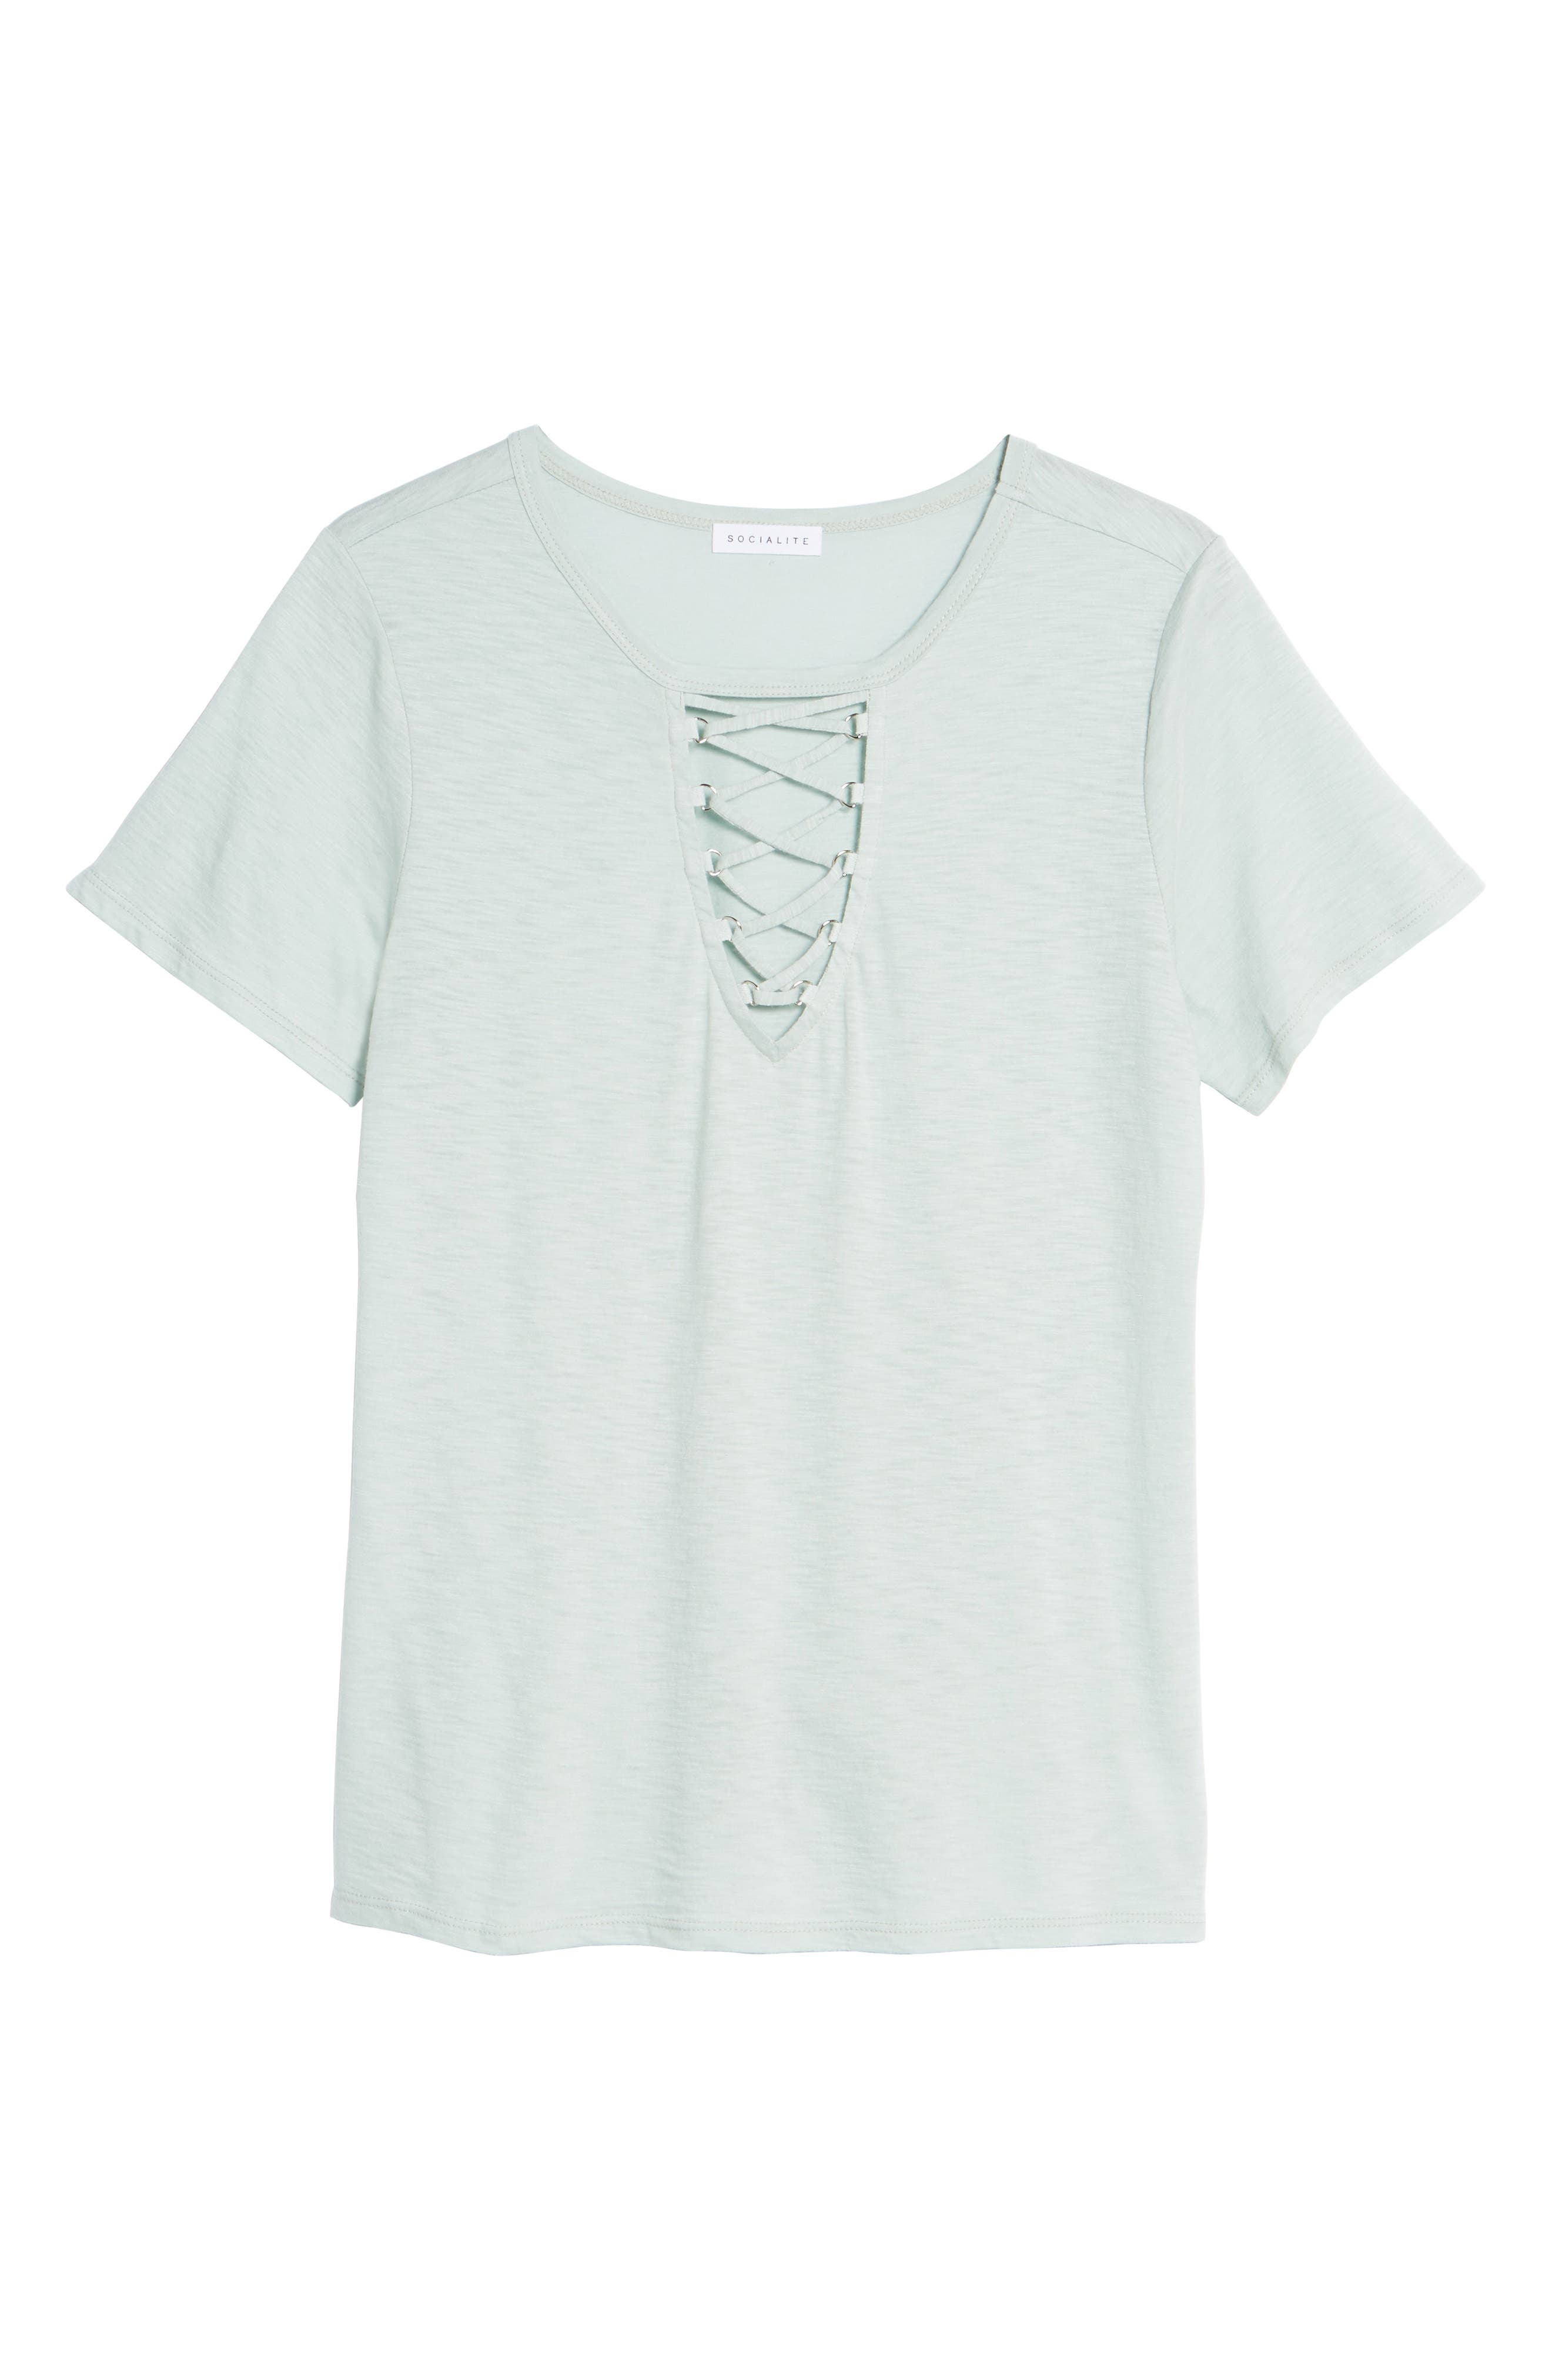 Grommet Lace-Up Tee,                             Alternate thumbnail 6, color,                             340